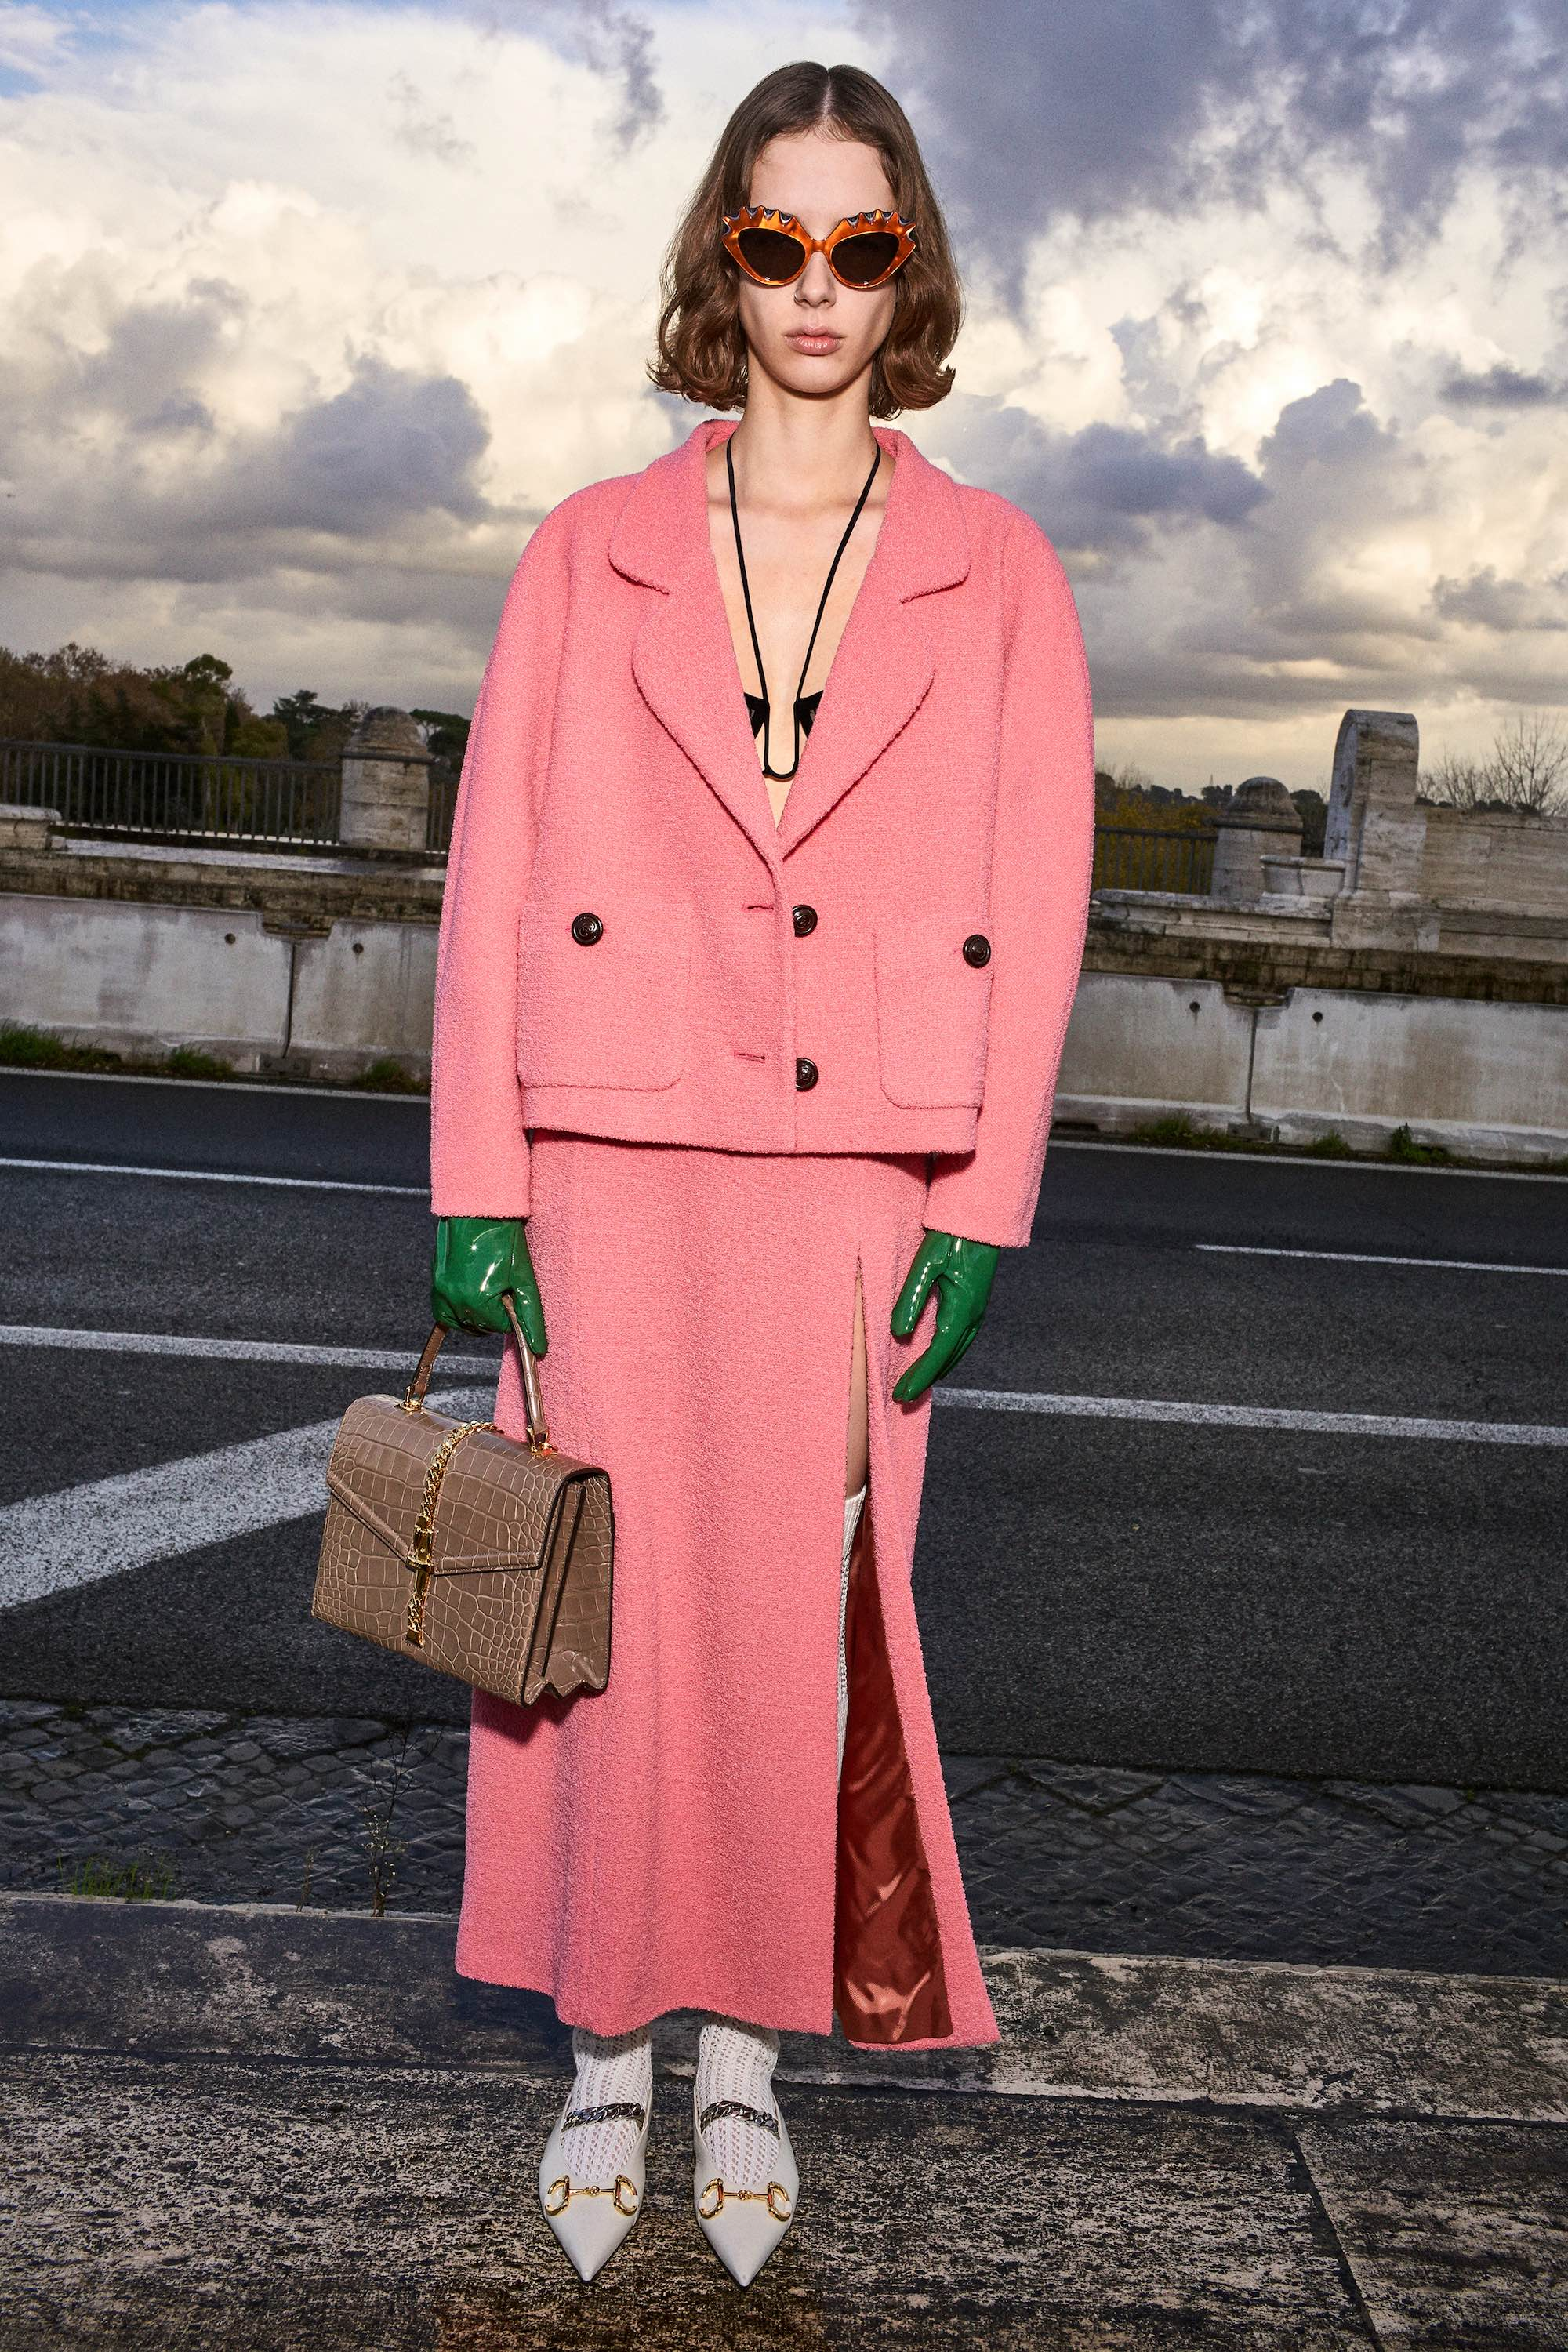 Gucci Pre Fall 2020 Lookbook shot by Bruce Gilden pink suits